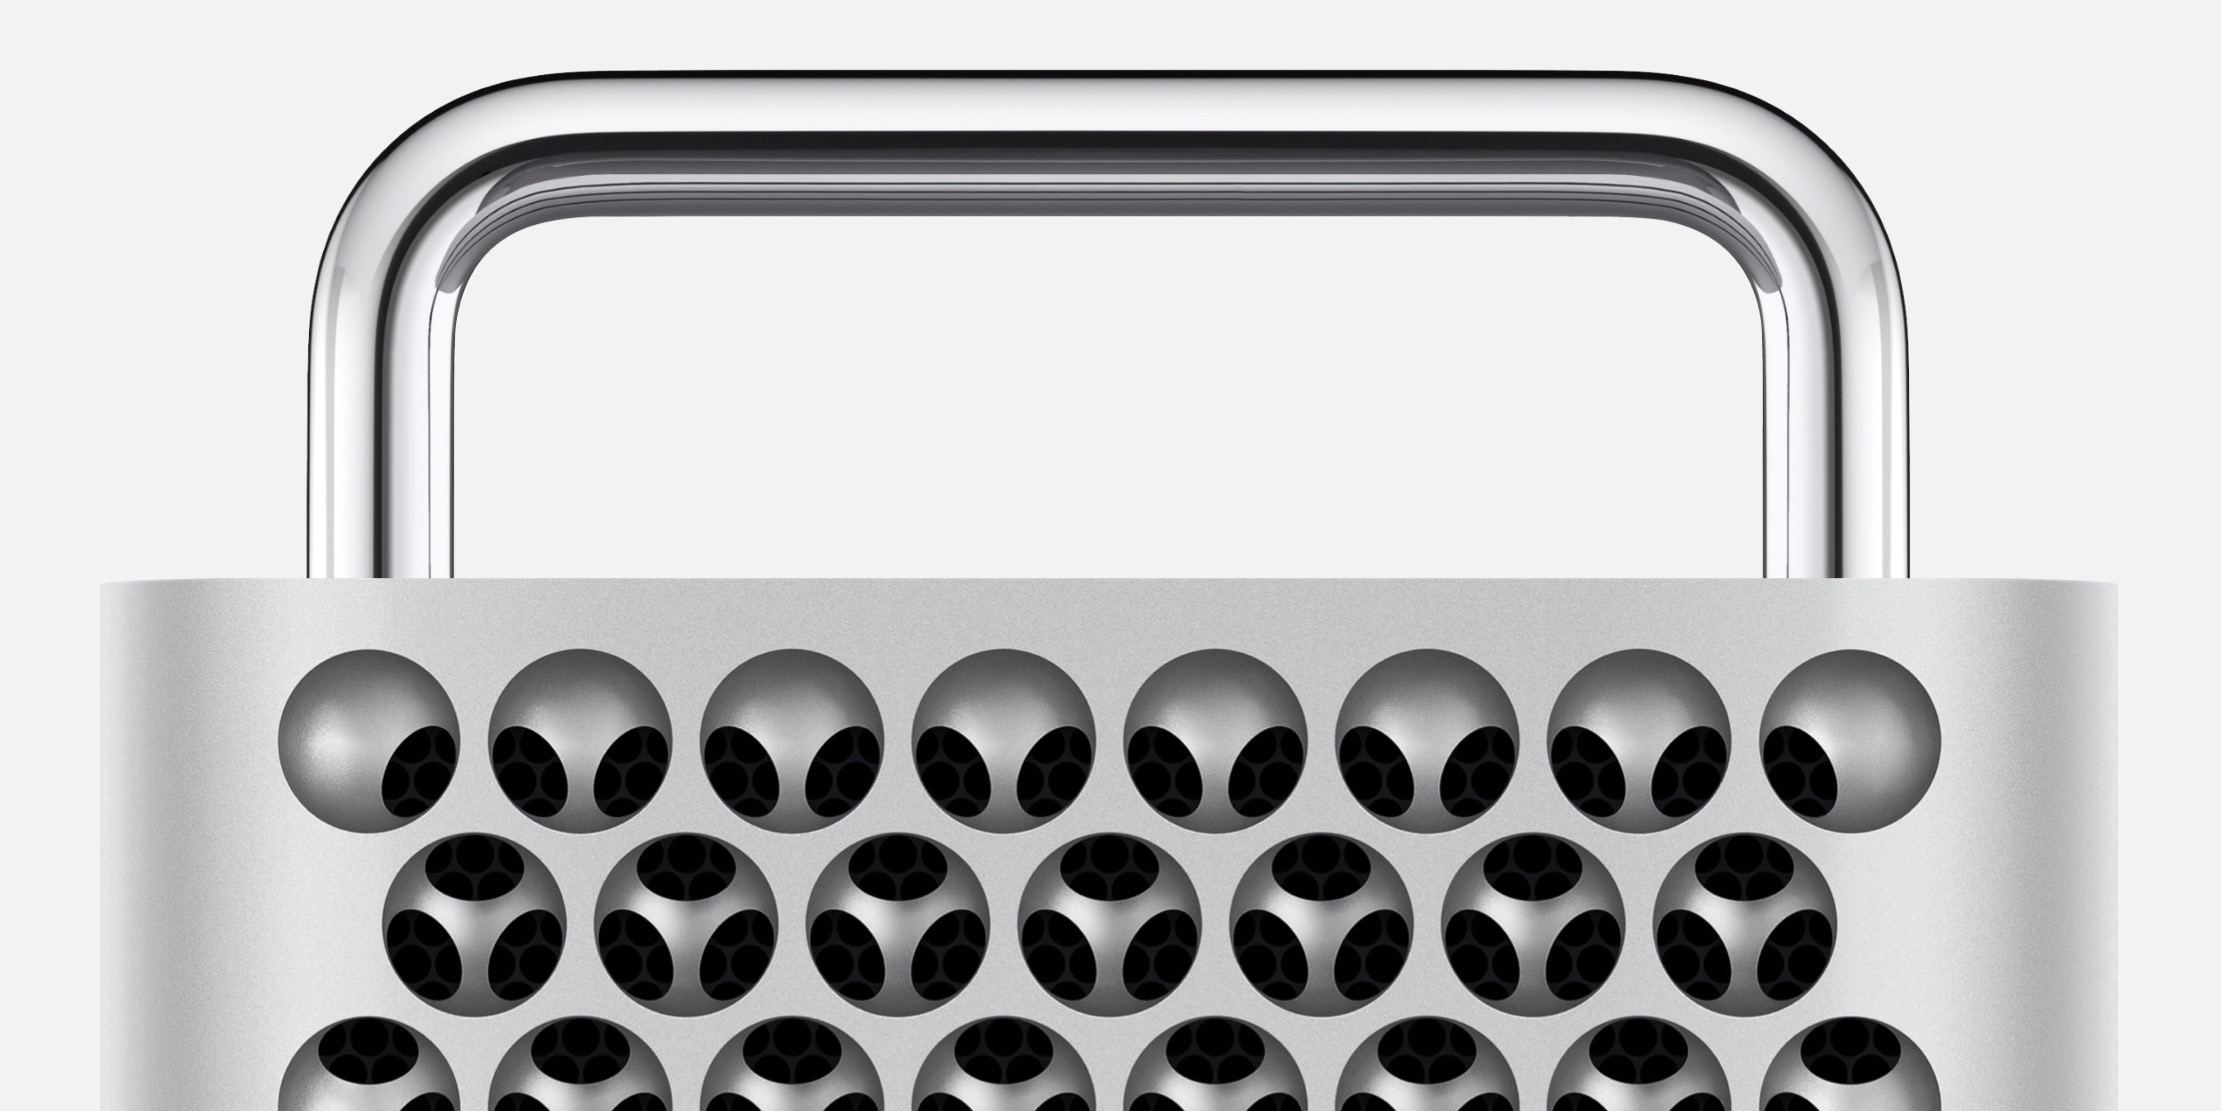 2019 Mac Pro will be manufactured in China